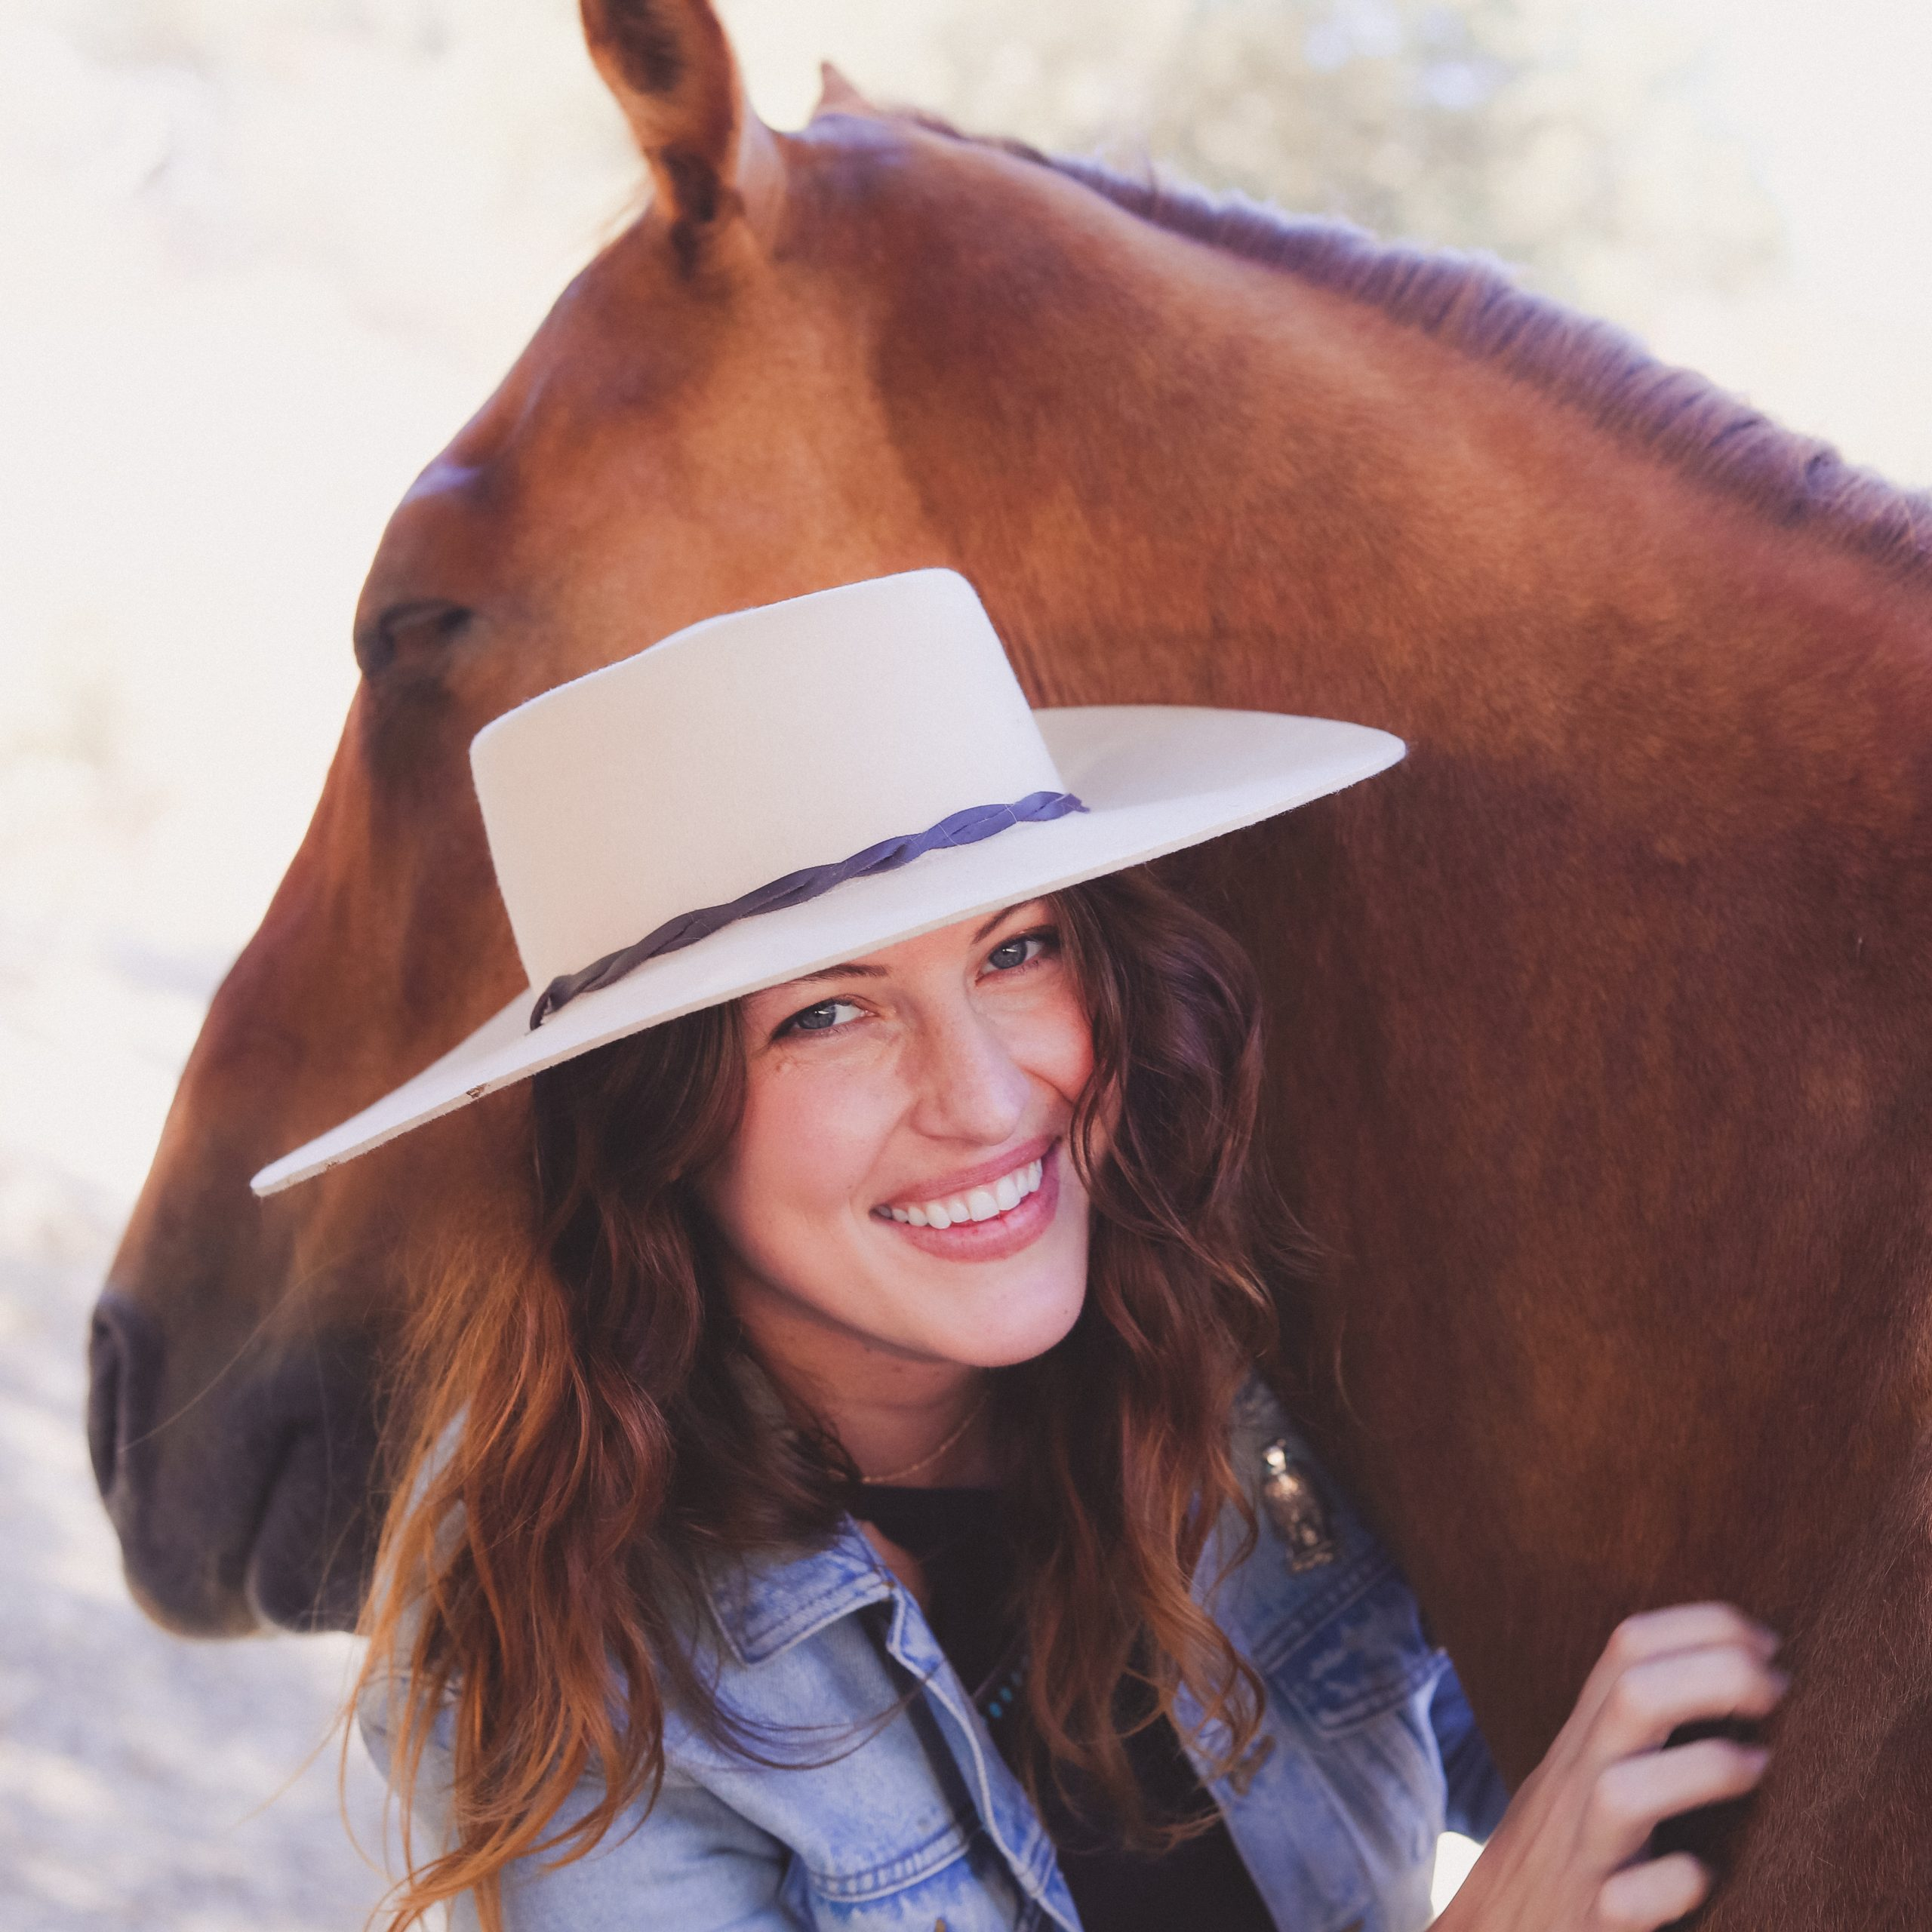 Charlotte Chanler can talk horse.  Seriously!  She is an animal communicator and medium who spends a lot of time talking to horses. In episode 14, she tells me all about how her life shaped the way she advocates for horses today through her business and online community, Hearthorse. Available in episode 14 of the For Animals For Earth Podcast